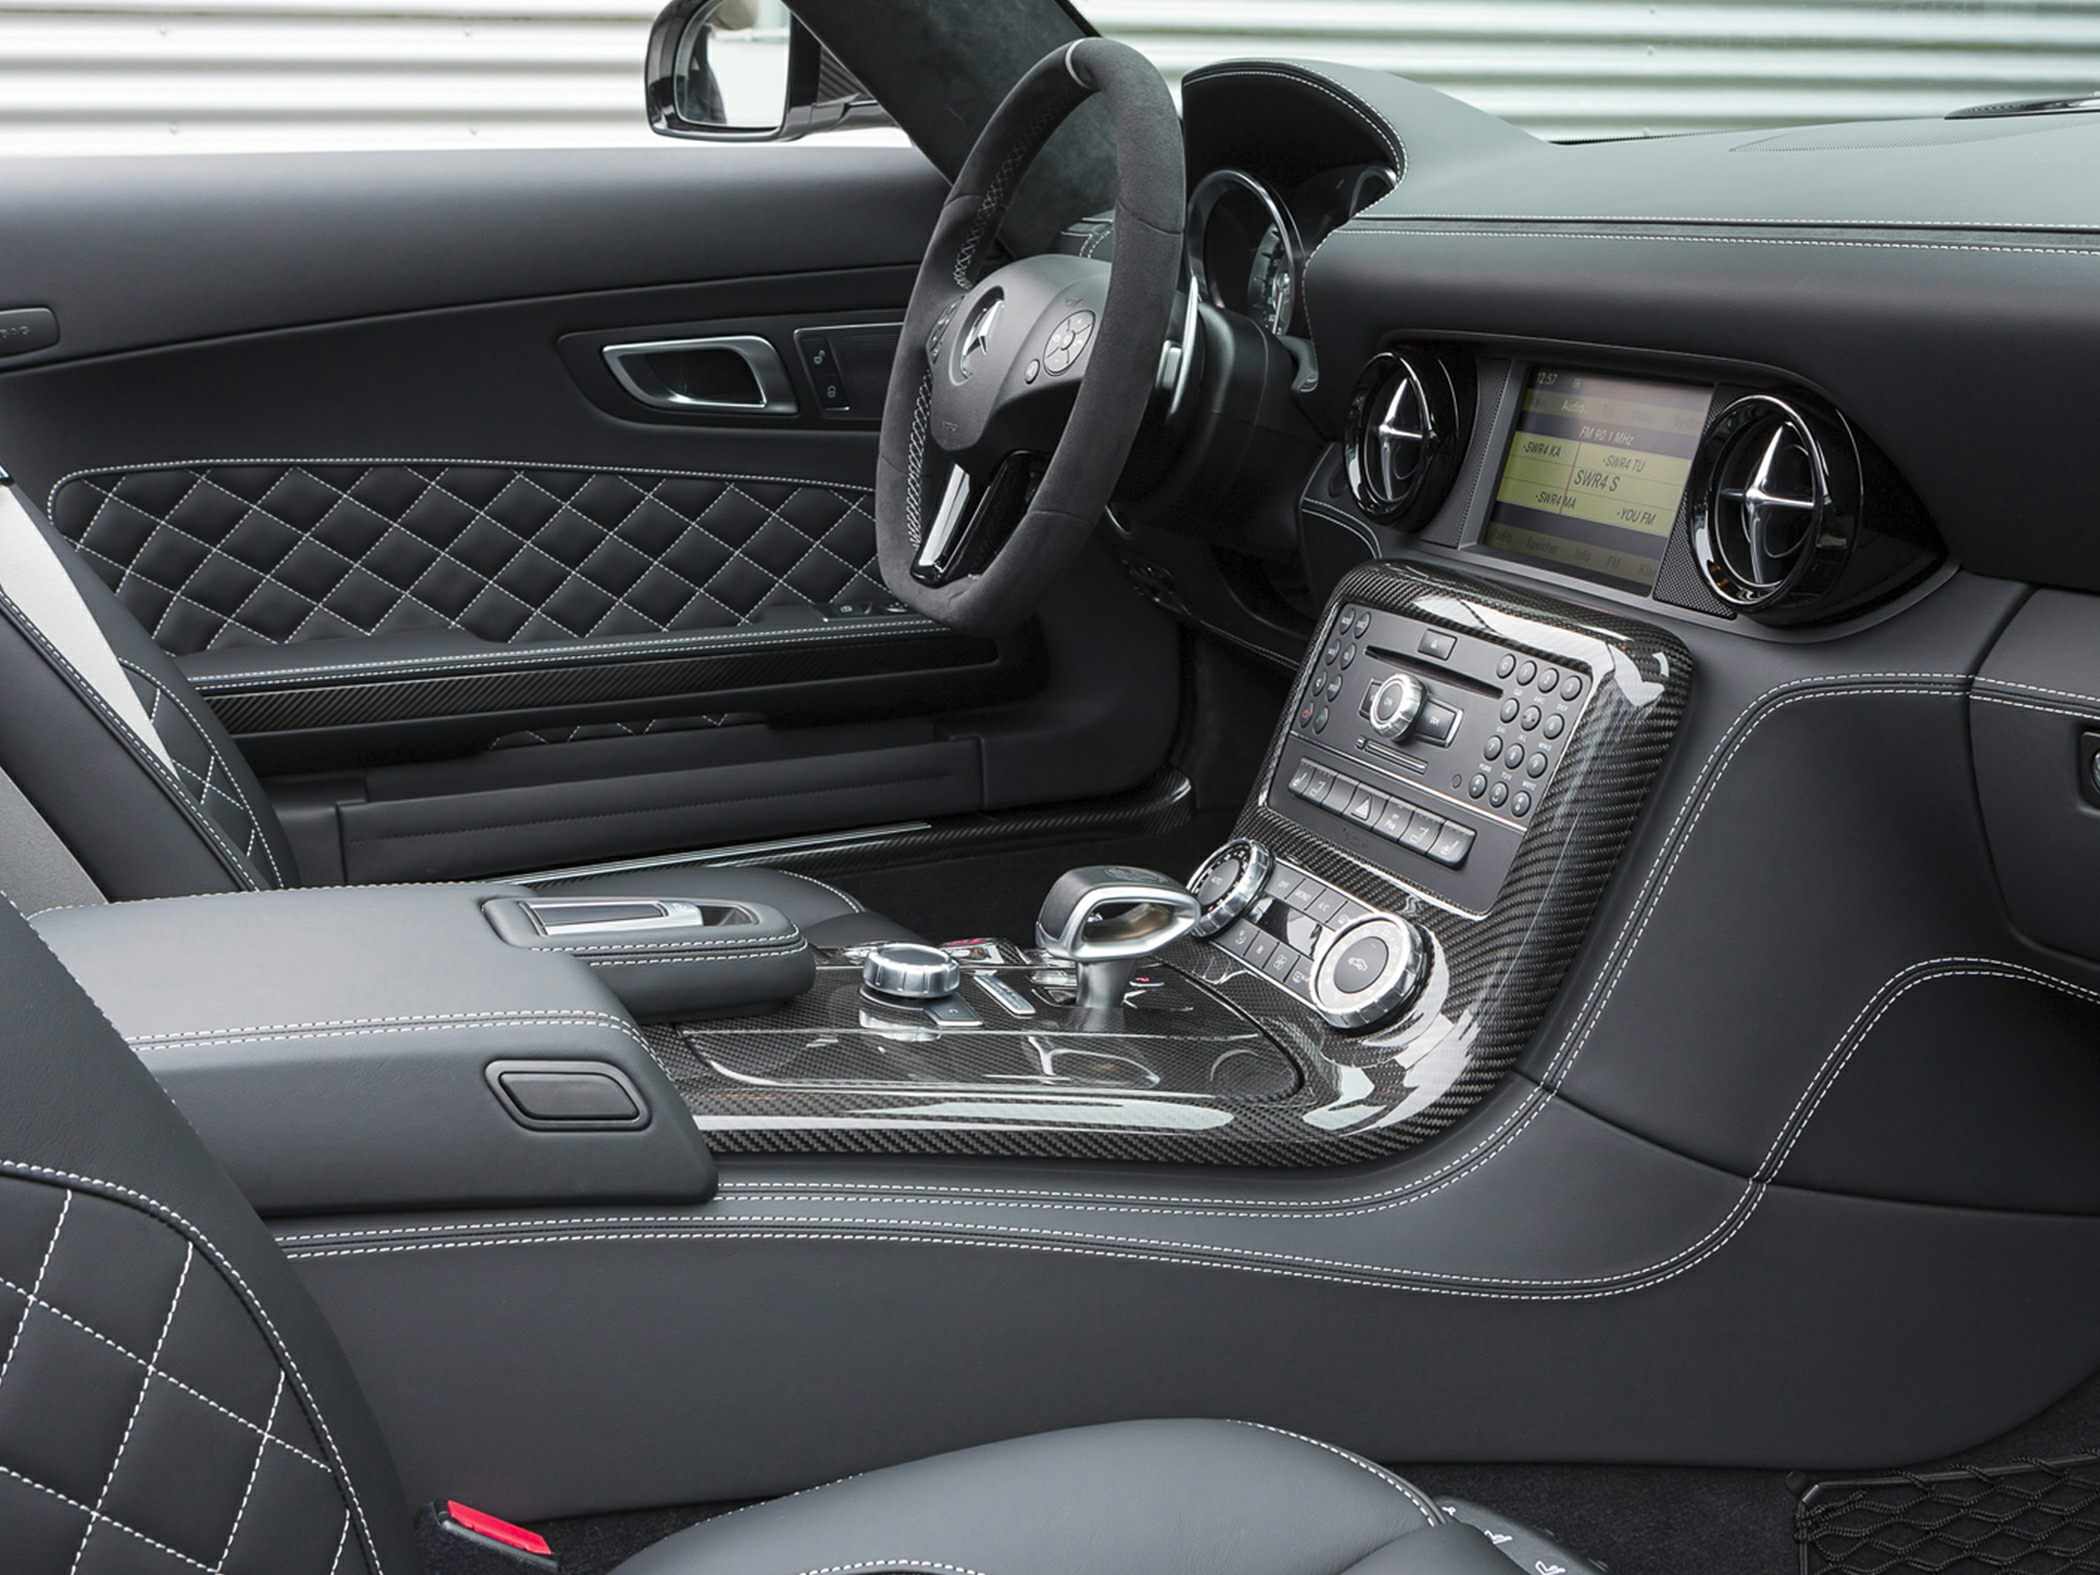 2015 Mercedes-Benz SLS AMG Interior